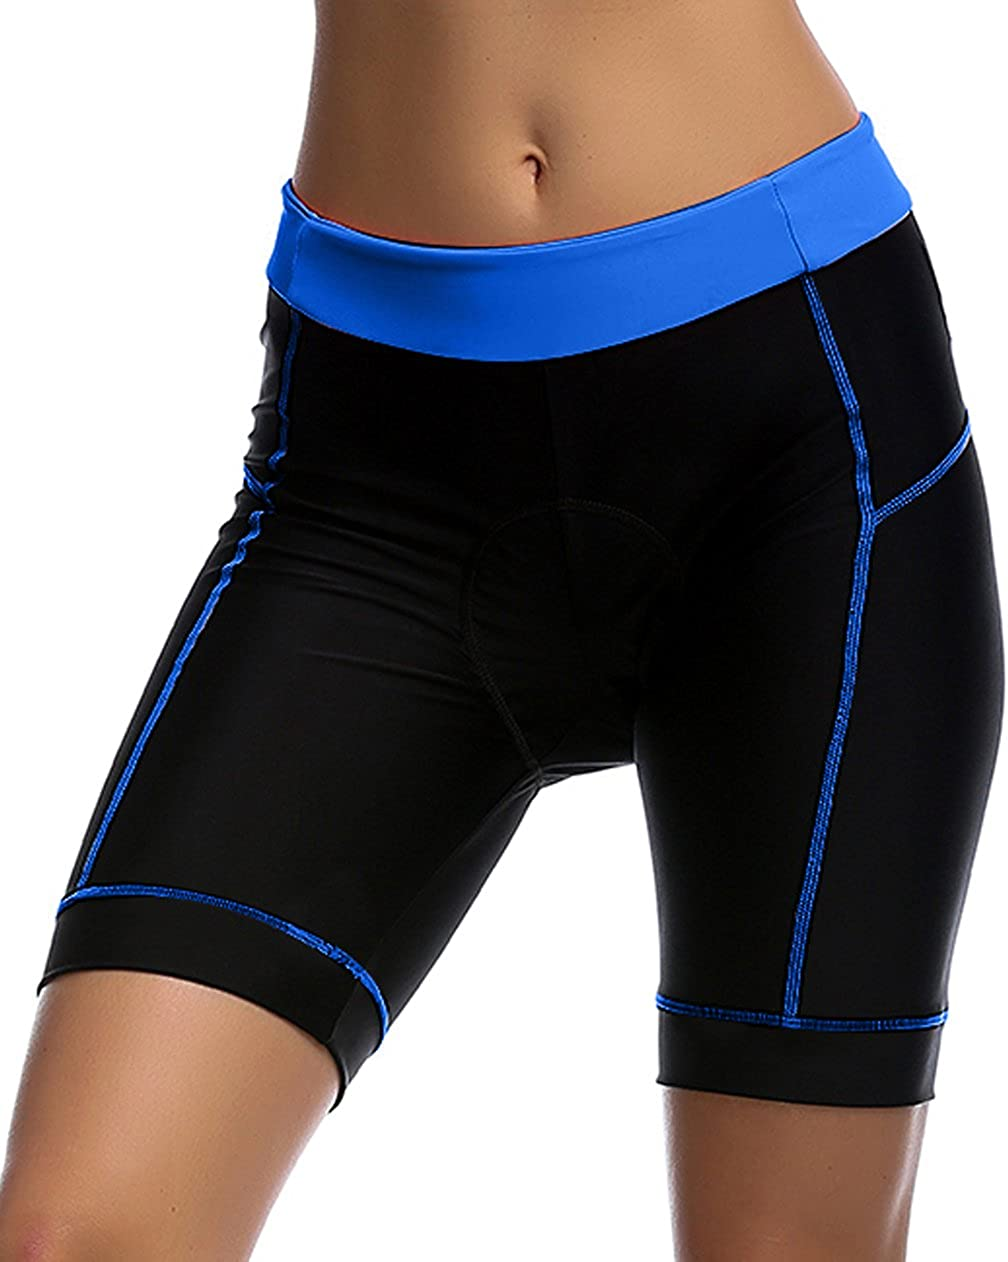 3D Gel Padded Bicycle Cycling Tights Shorts Bike Short Breathable Pants Trouser